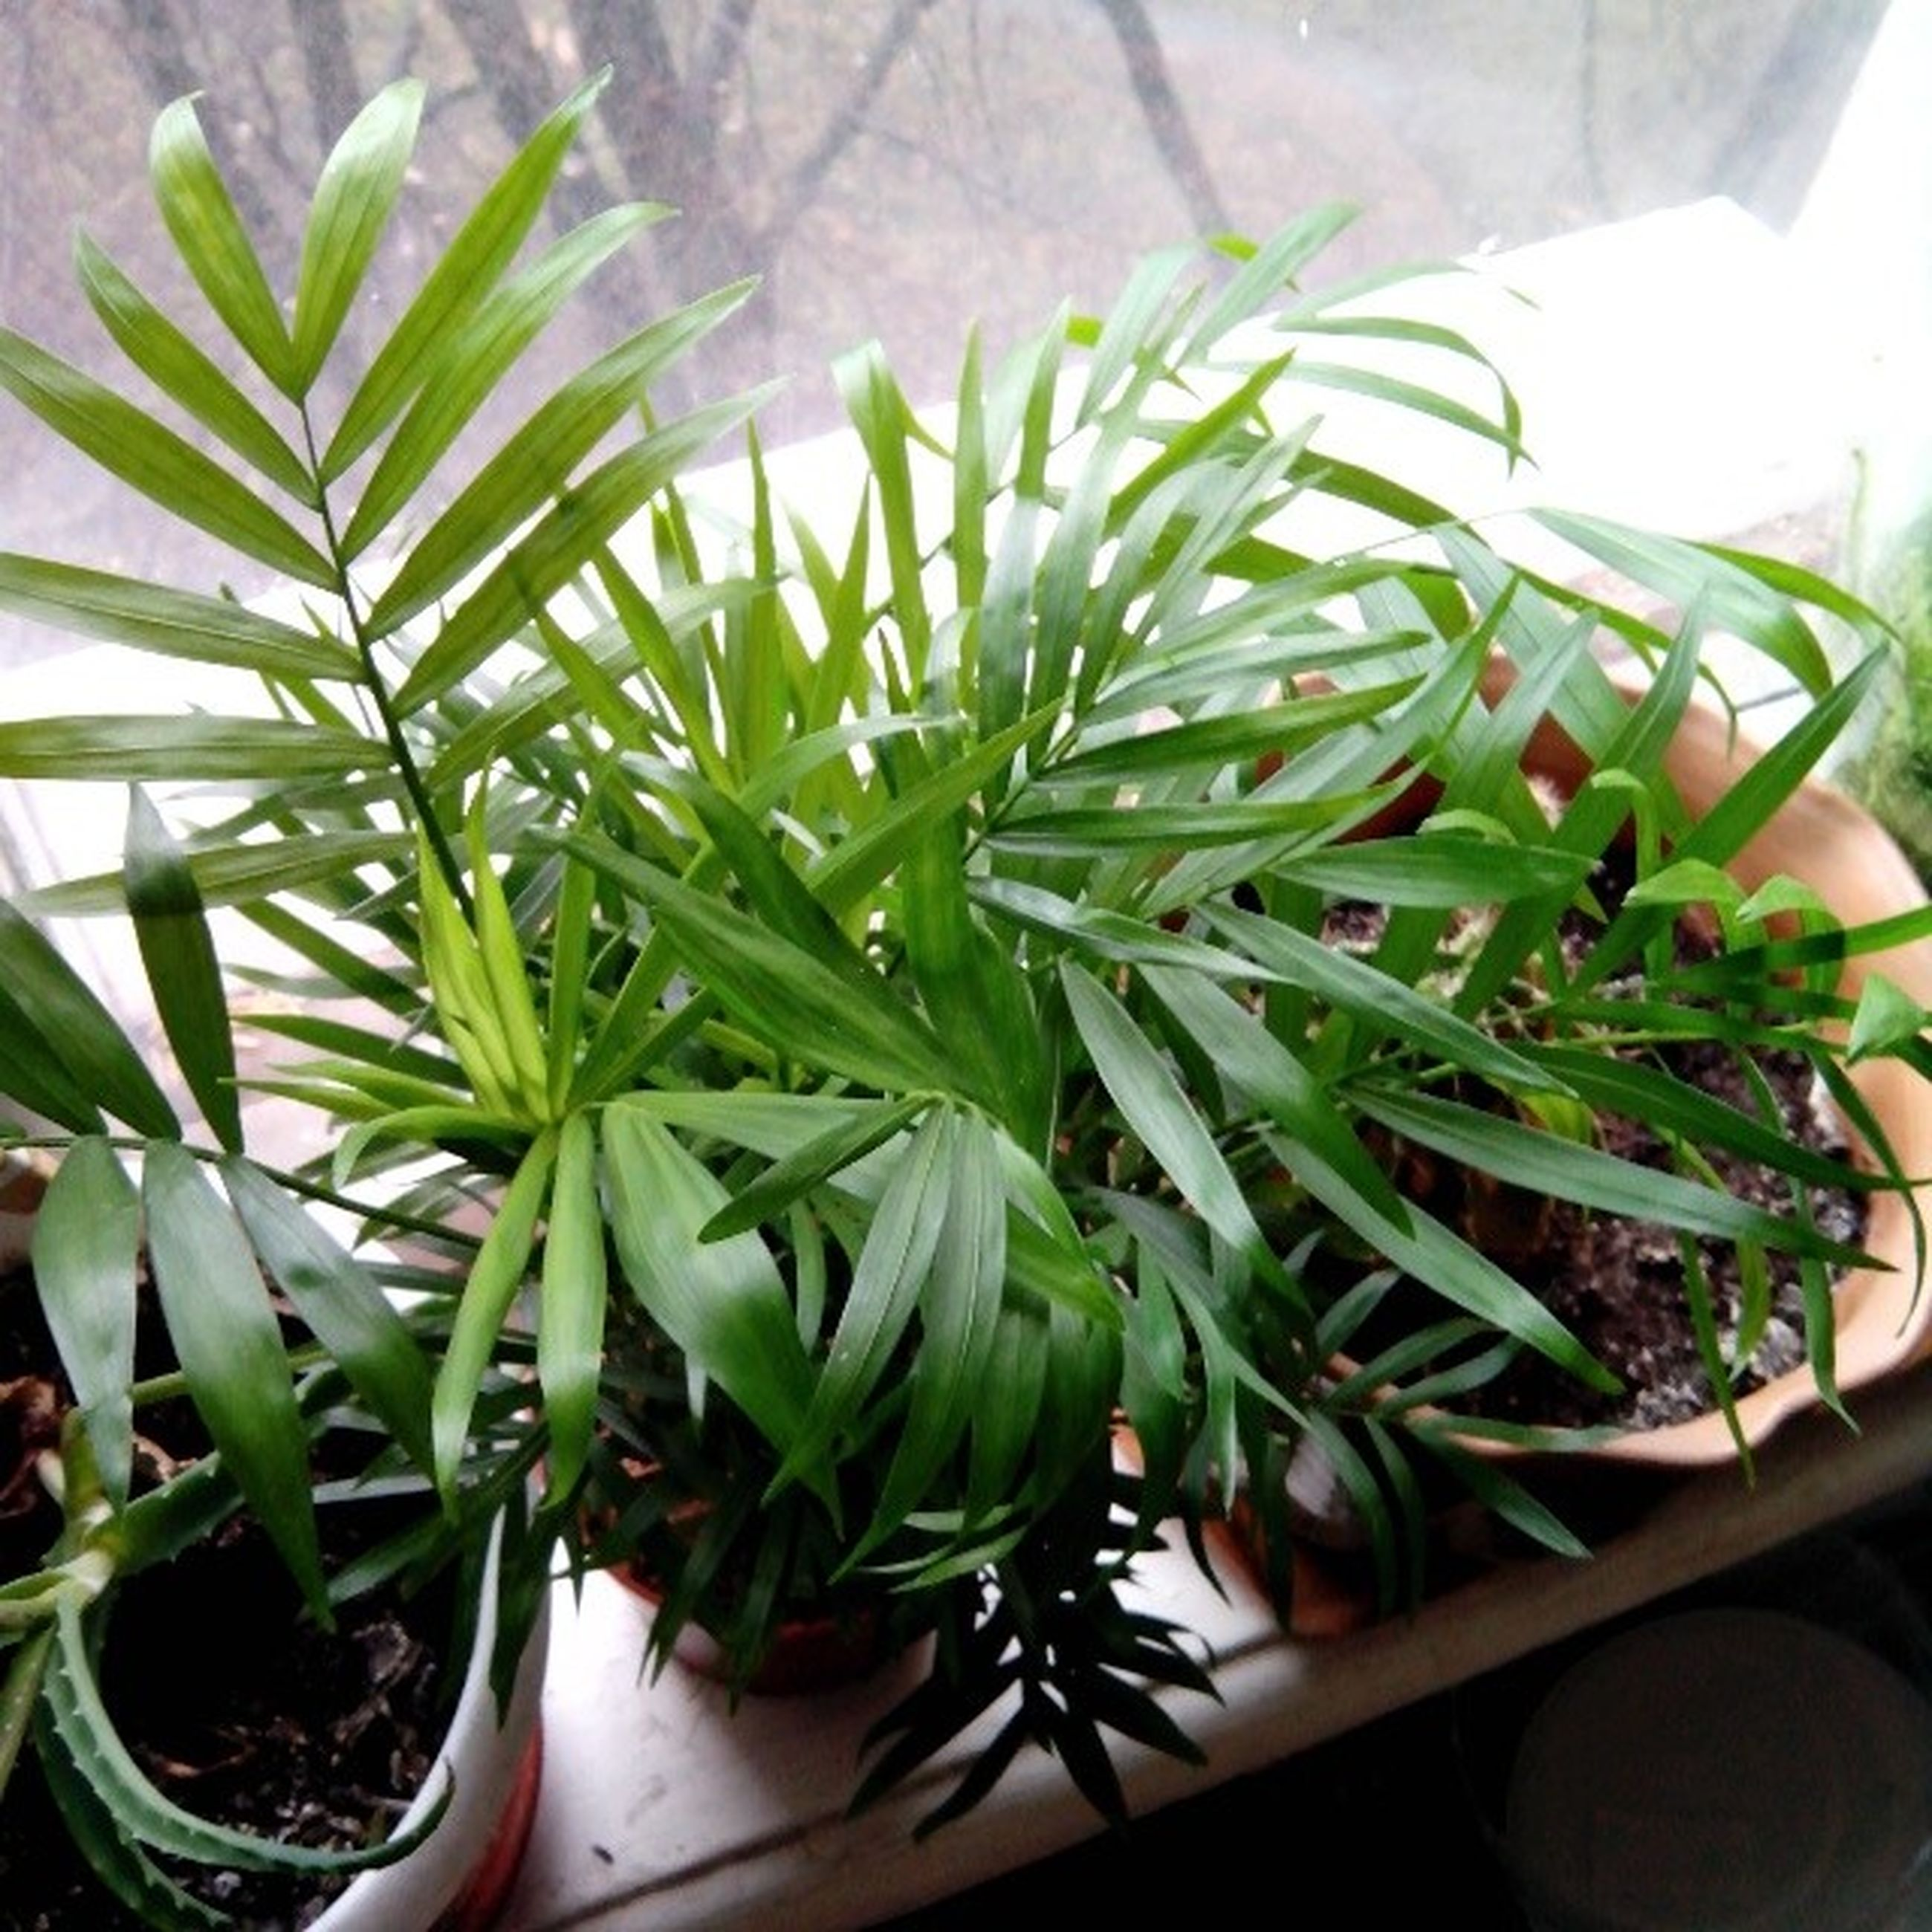 potted plant, plant, green color, leaf, indoors, growth, freshness, close-up, high angle view, food and drink, healthy eating, green, table, nature, no people, vegetable, home interior, day, food, growing